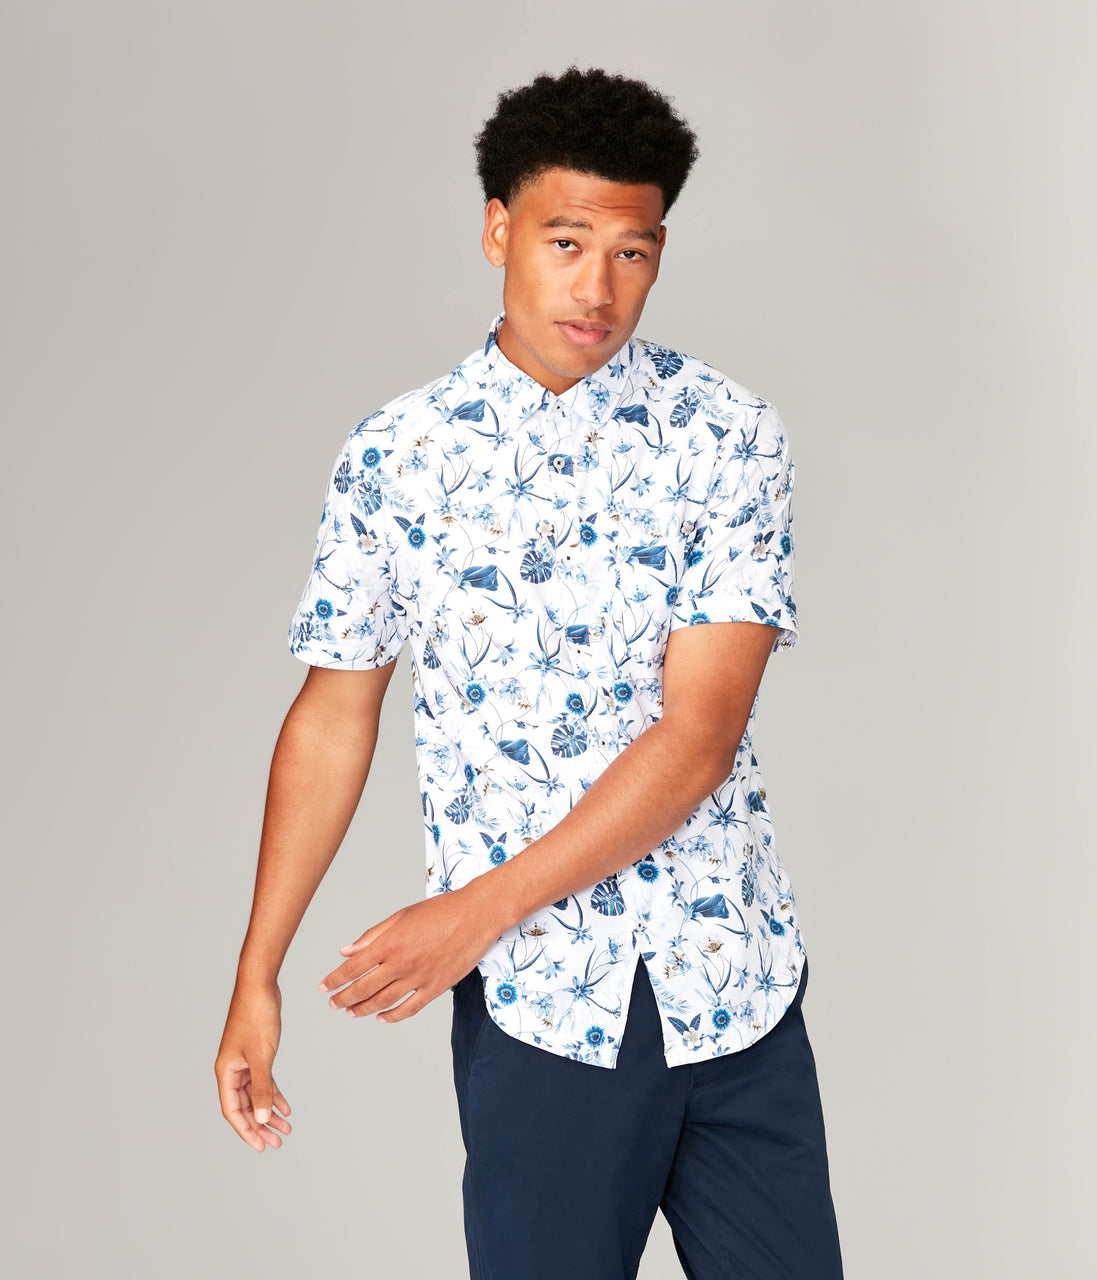 Woven On-Point Shirt - White Vine Floral - Good Man Brand - Woven On-Point Shirt - White Vine Floral